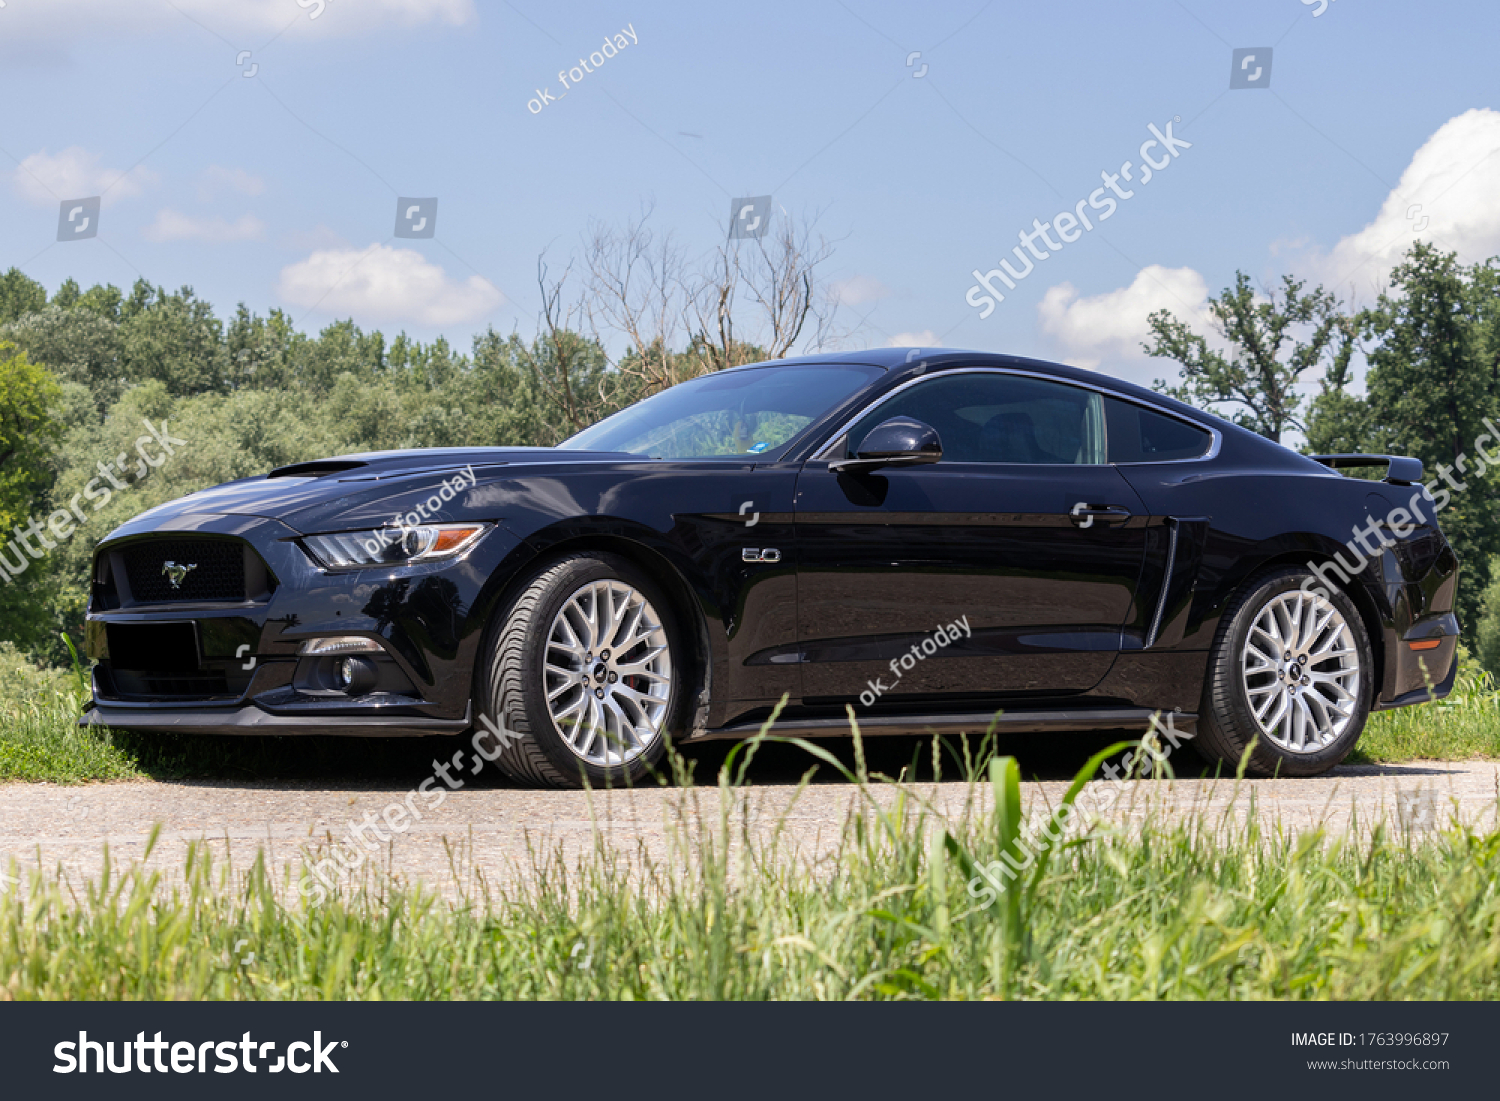 stock-photo-black-ford-mustang-gt-car-on